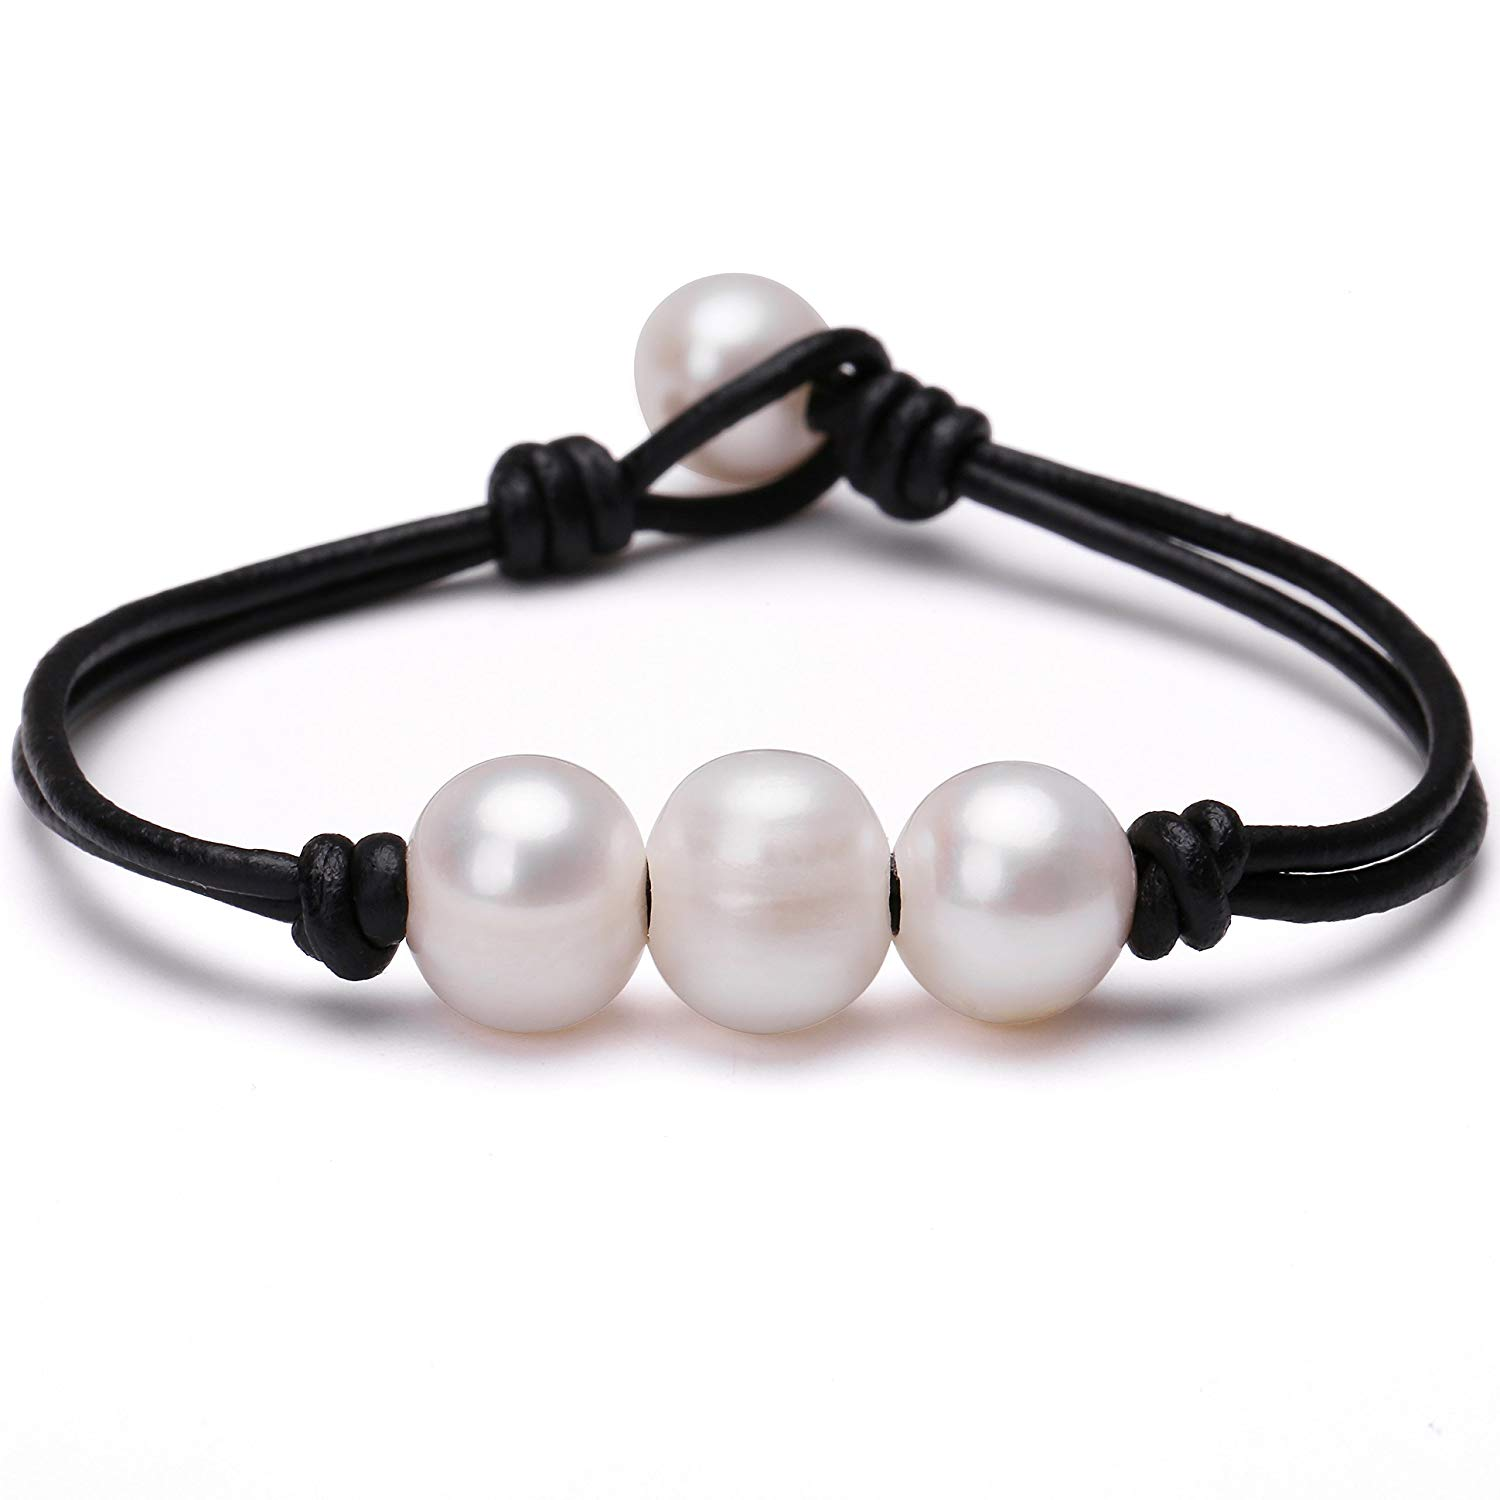 Wholesale Lot Of 20 Genuine Cultured Freshwater Coil Pearl Bangle Bracelet Fine Jewellery Sets